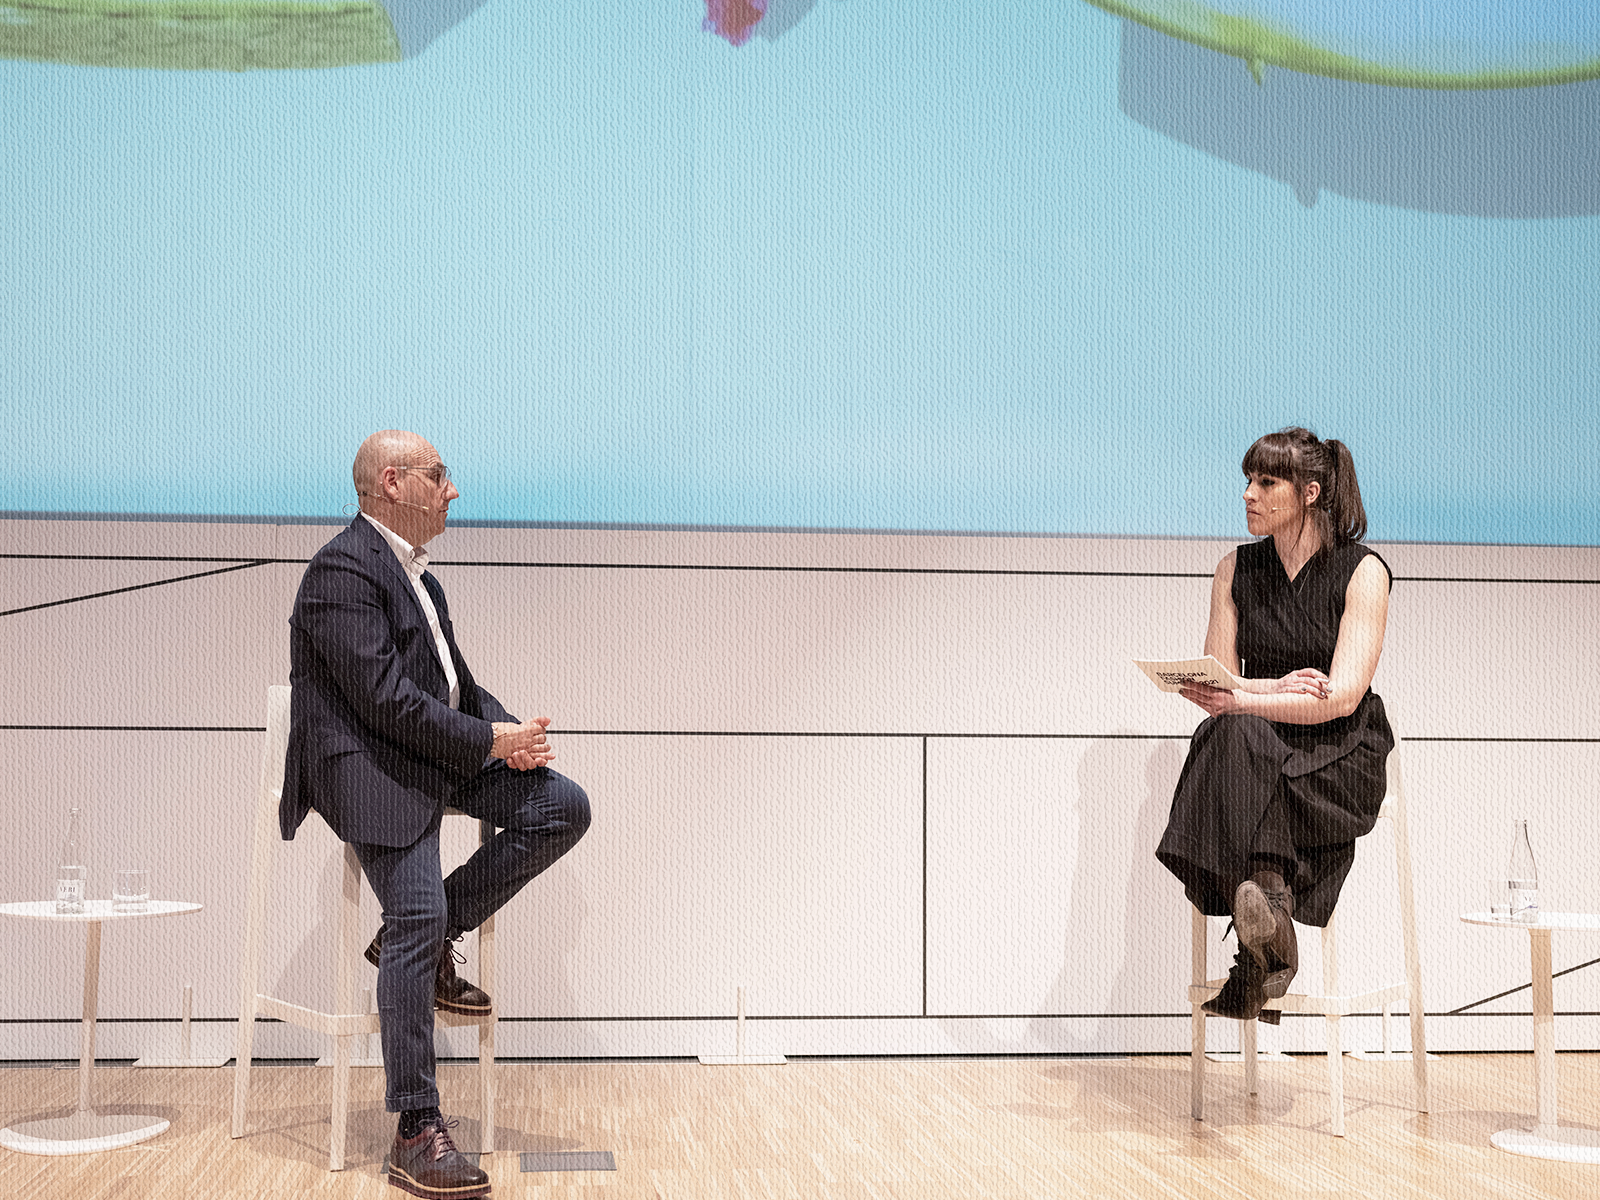 /bfs21/slideshows/4.png